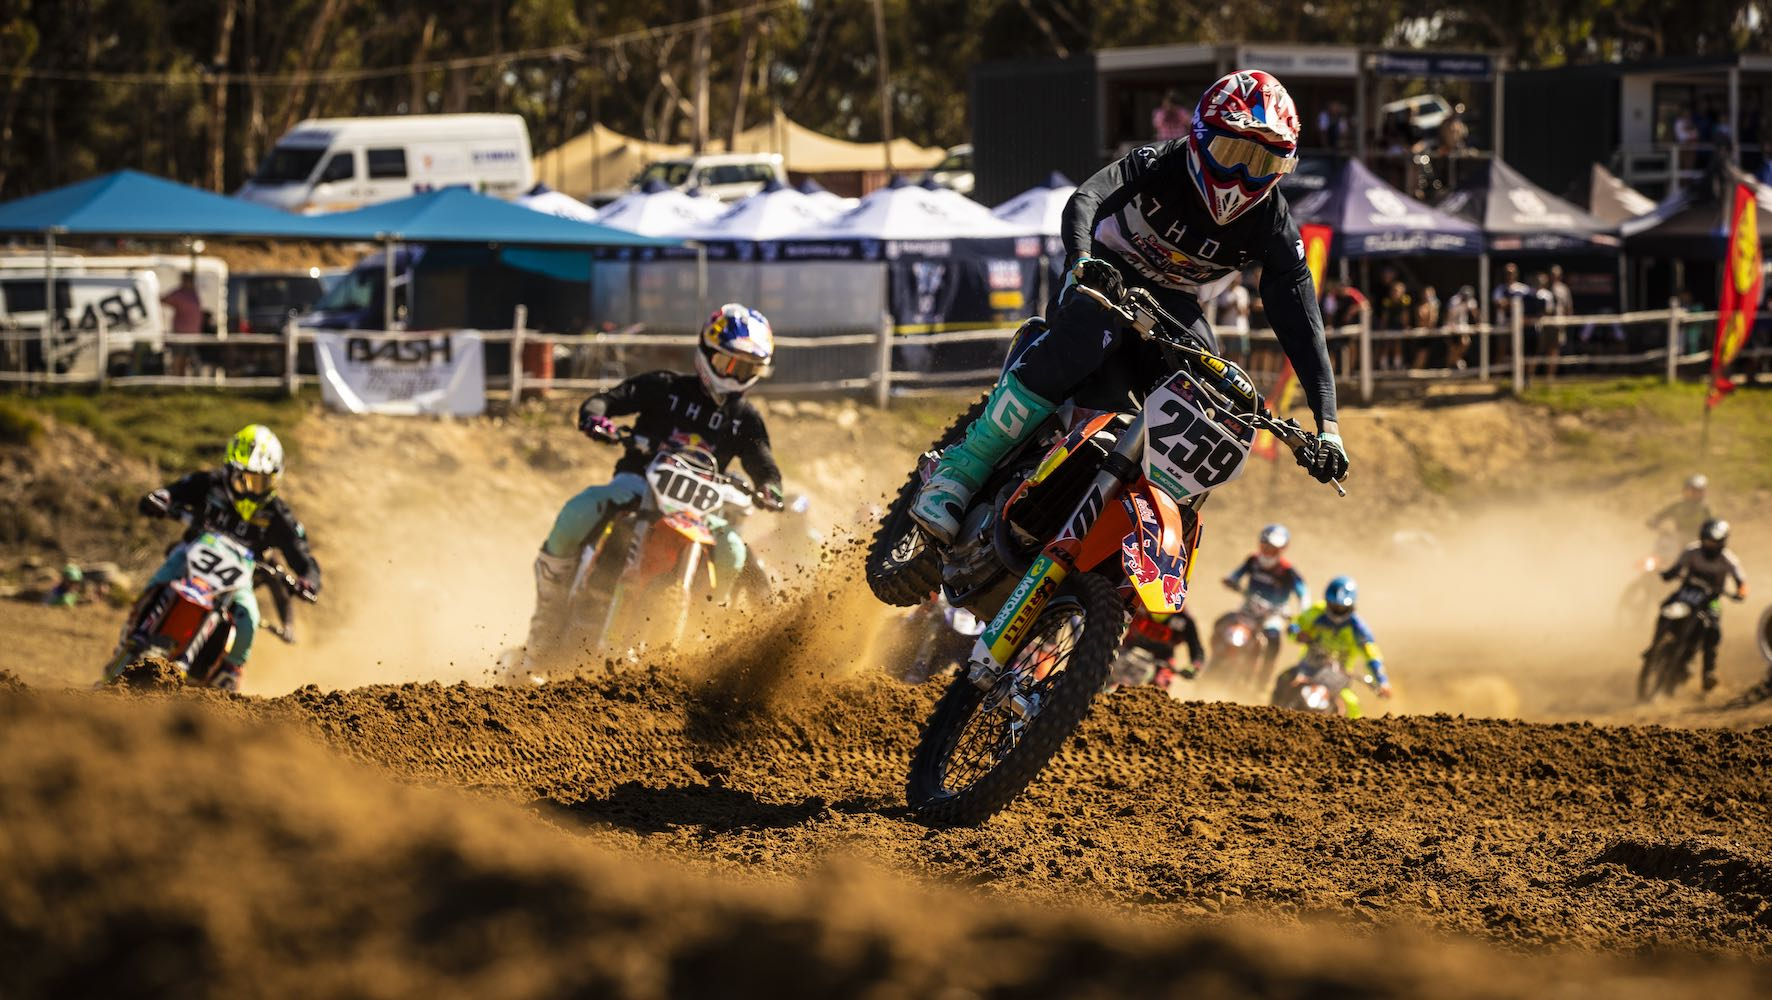 Race report from Round 2 of the Motocross Nationals